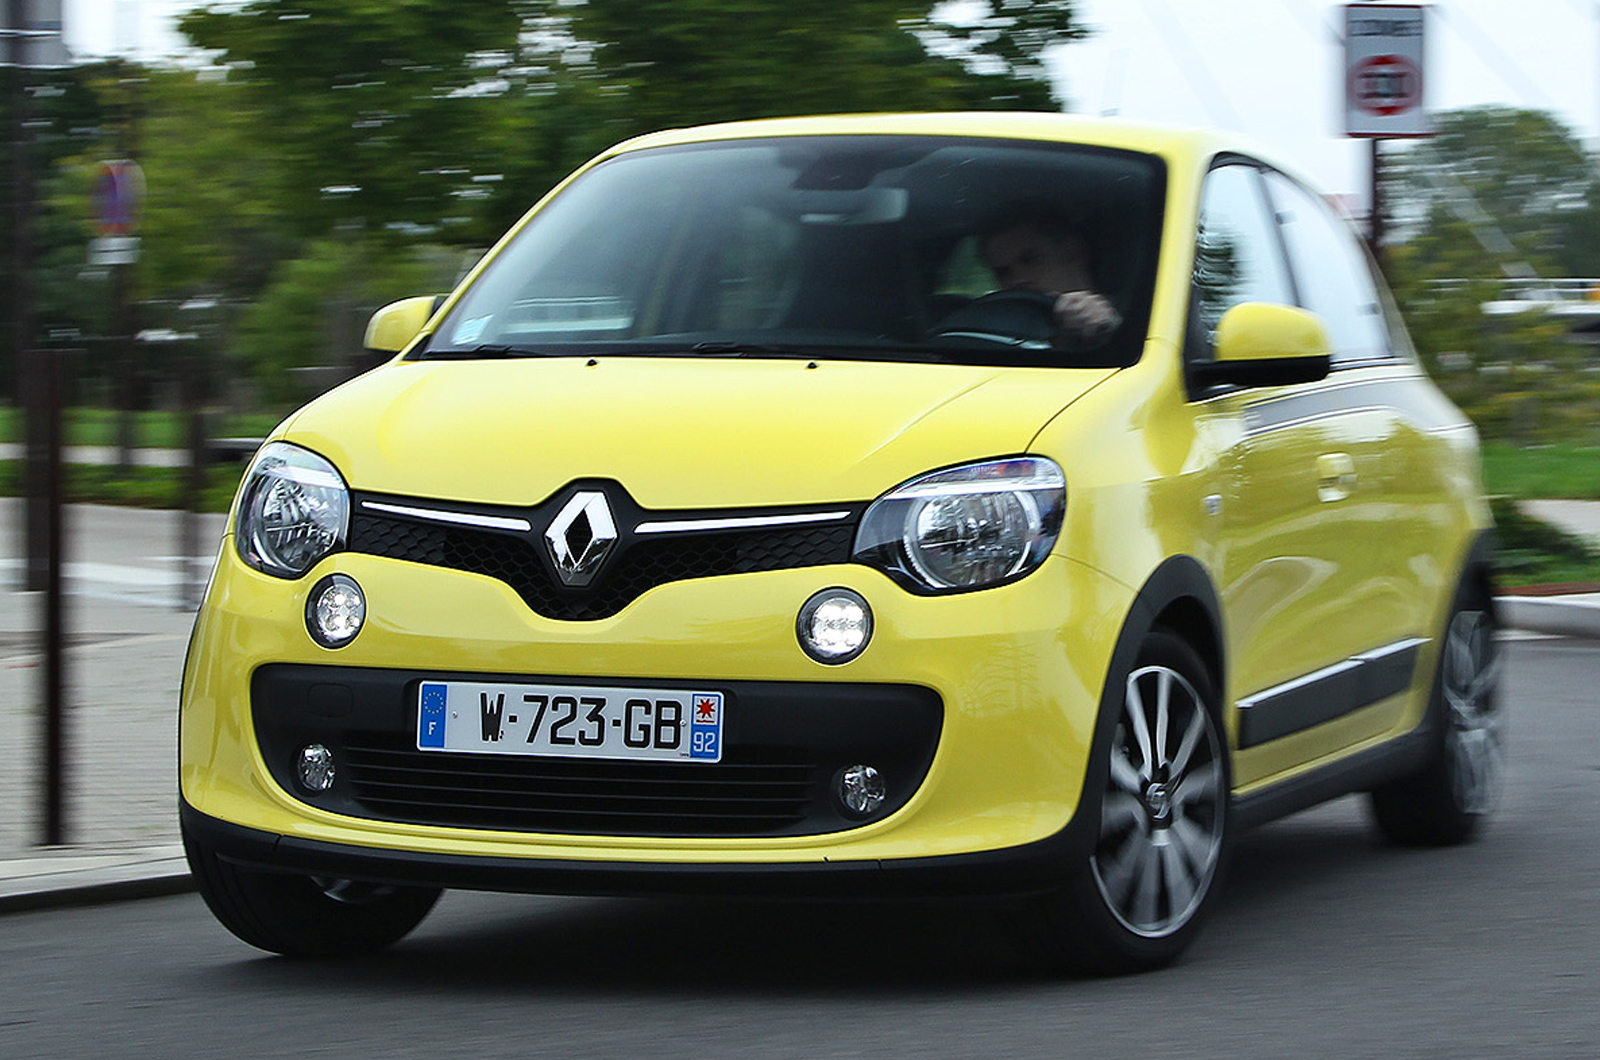 renault twingo tce 90 dynamique first drive review by autocar renault twingo forum. Black Bedroom Furniture Sets. Home Design Ideas